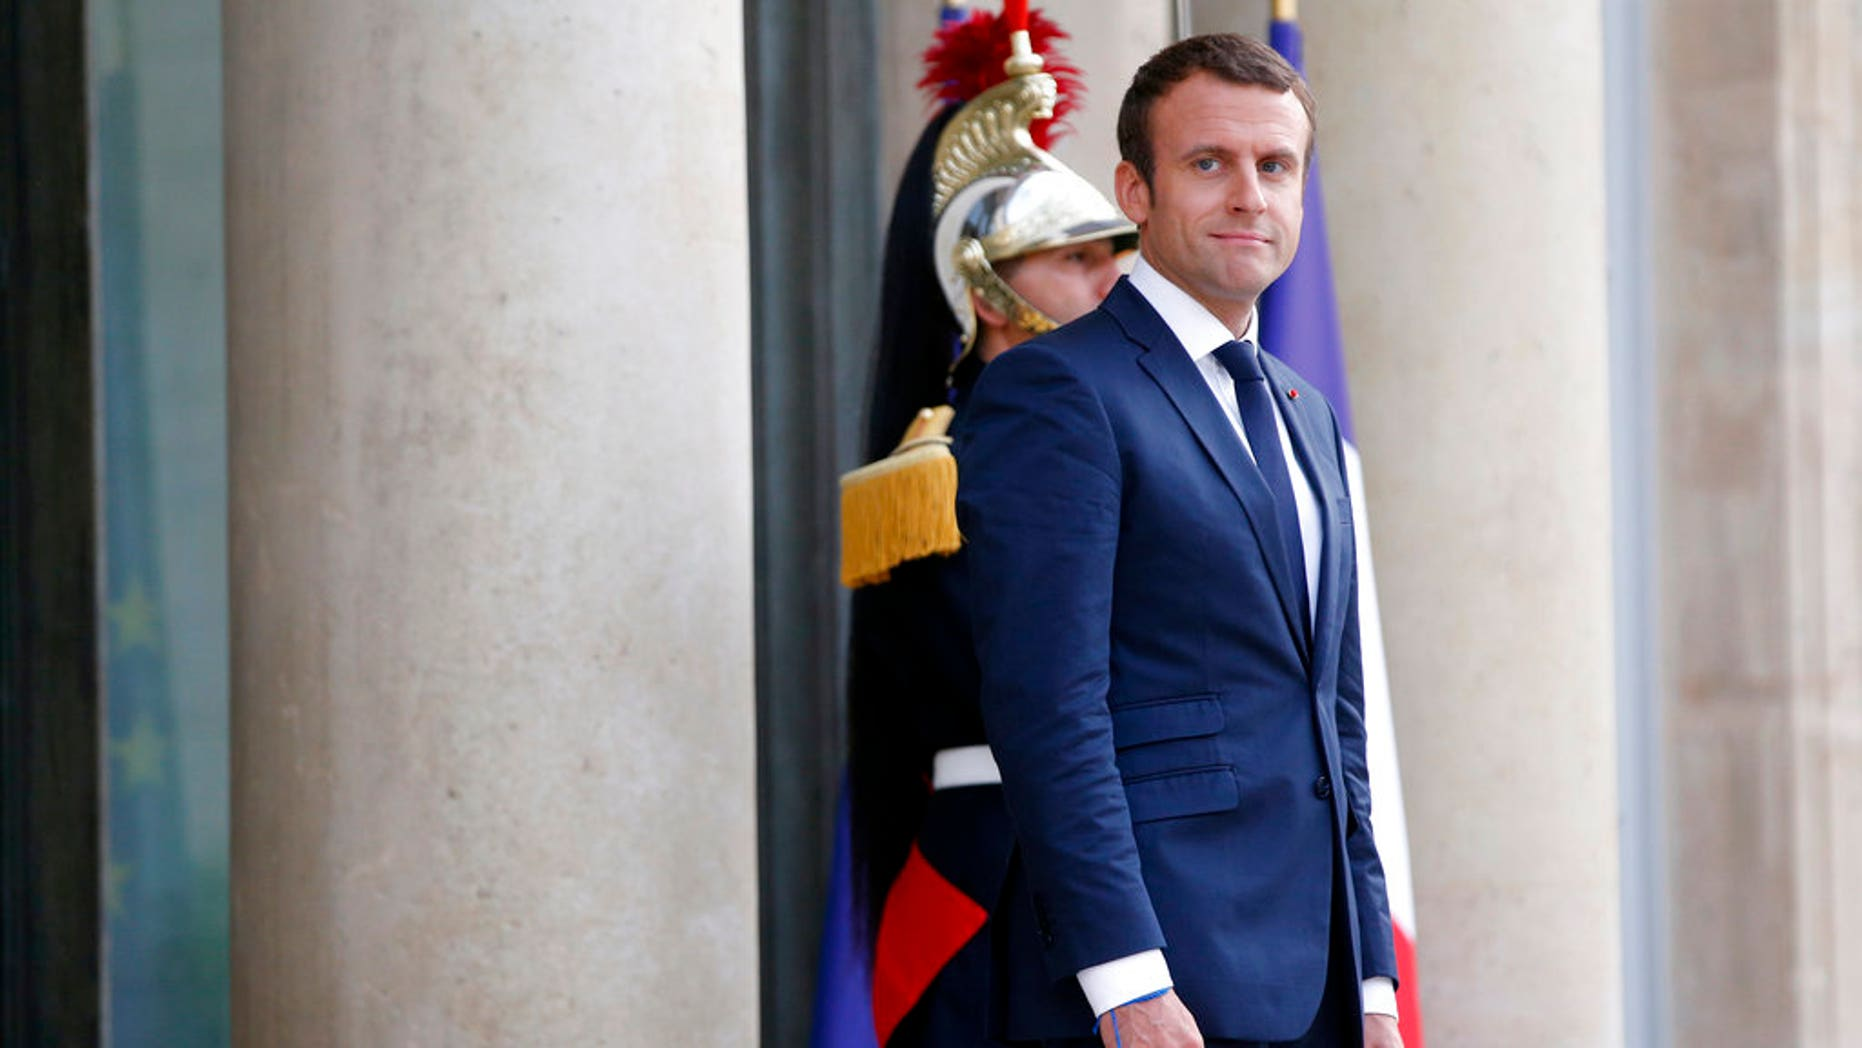 France's President Emmanuel Macron waits prior to welcoming Mexico's President Enrique Pena Nieto, for a dinner at the Elysee Palace, in Paris, Thursday, July 6, 2017. (AP Photo/Thibault Camus)